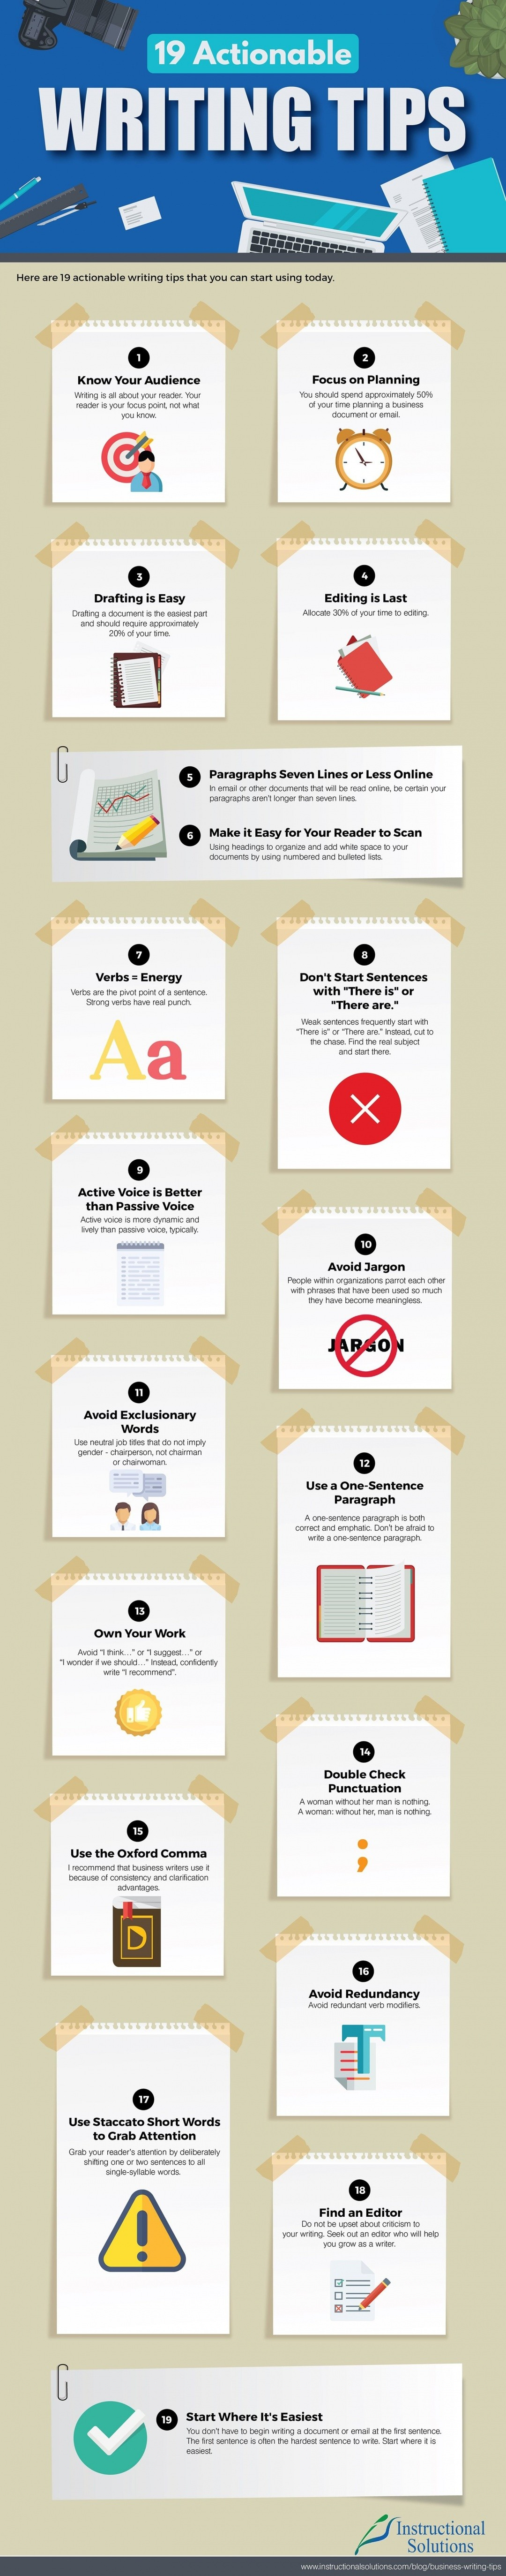 Actionable Writing Tips